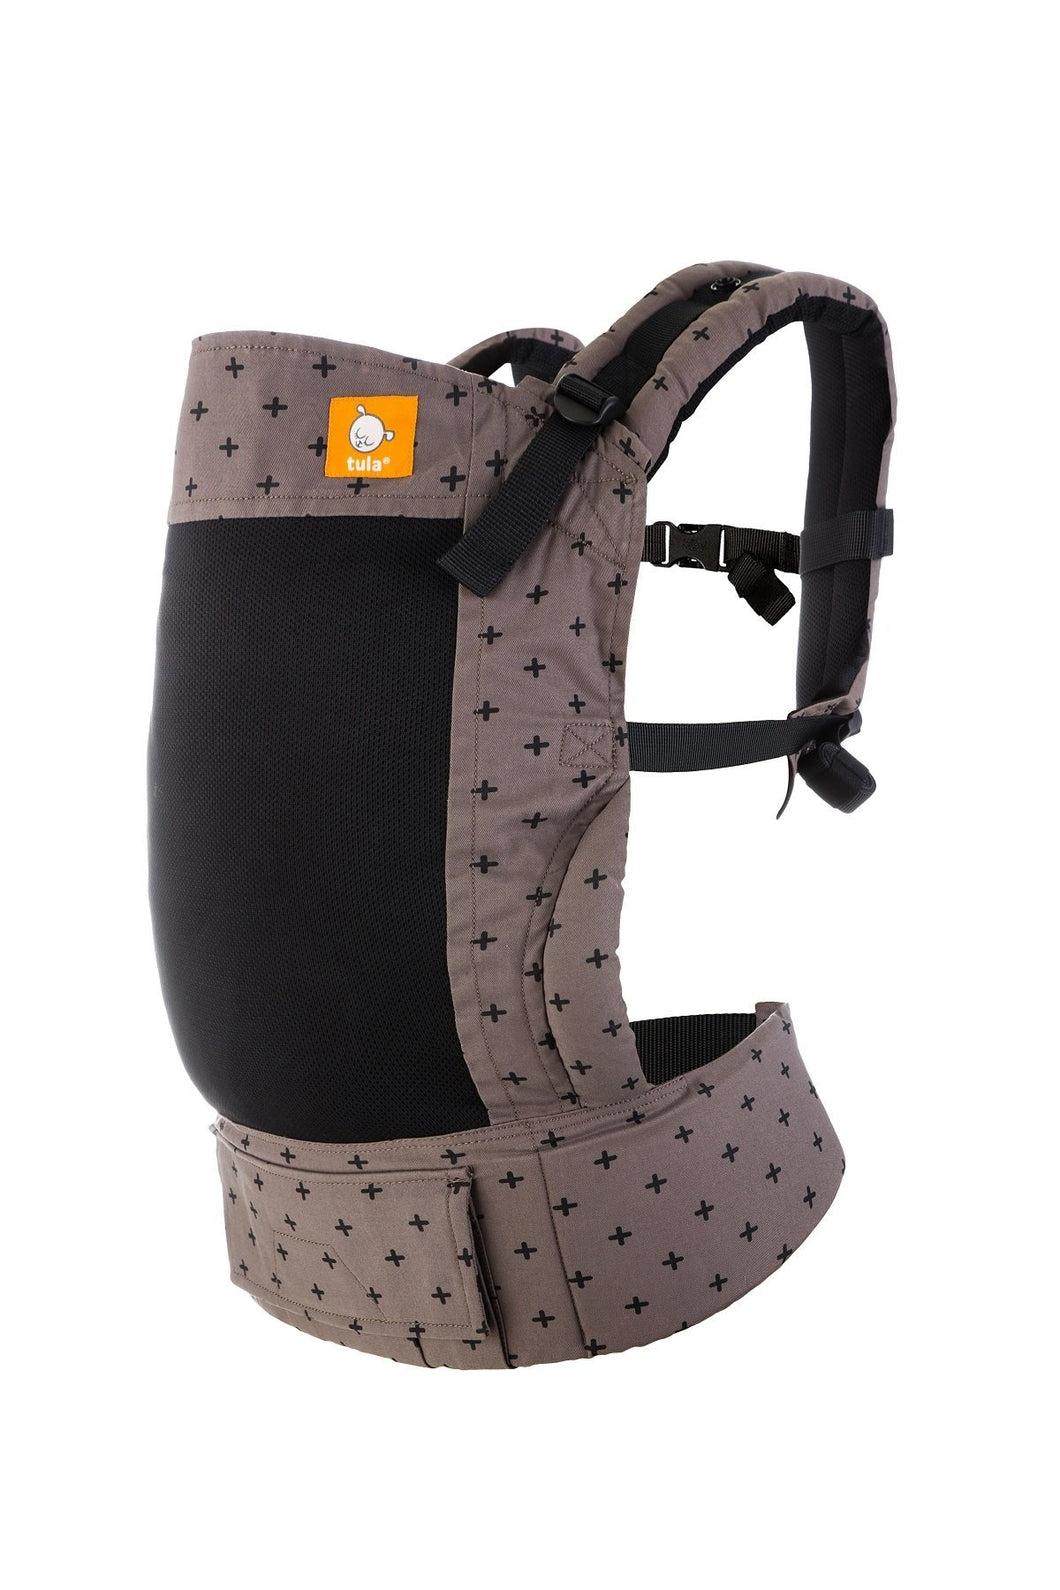 Coast Mason - Tula Baby Carrier